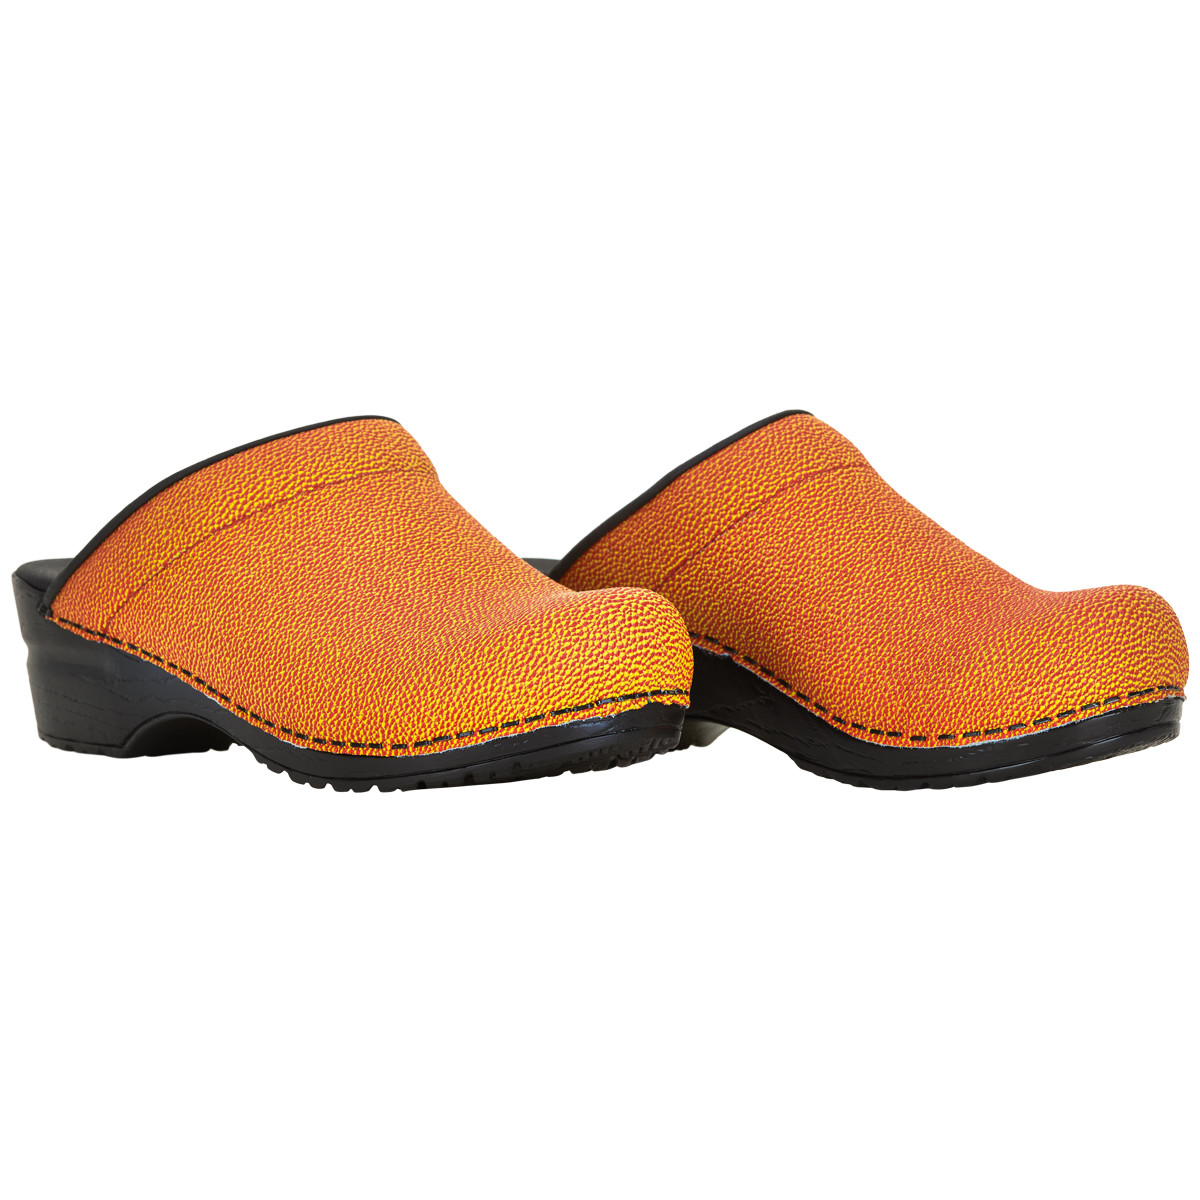 Sanita Original Sting Clogs 470038 9